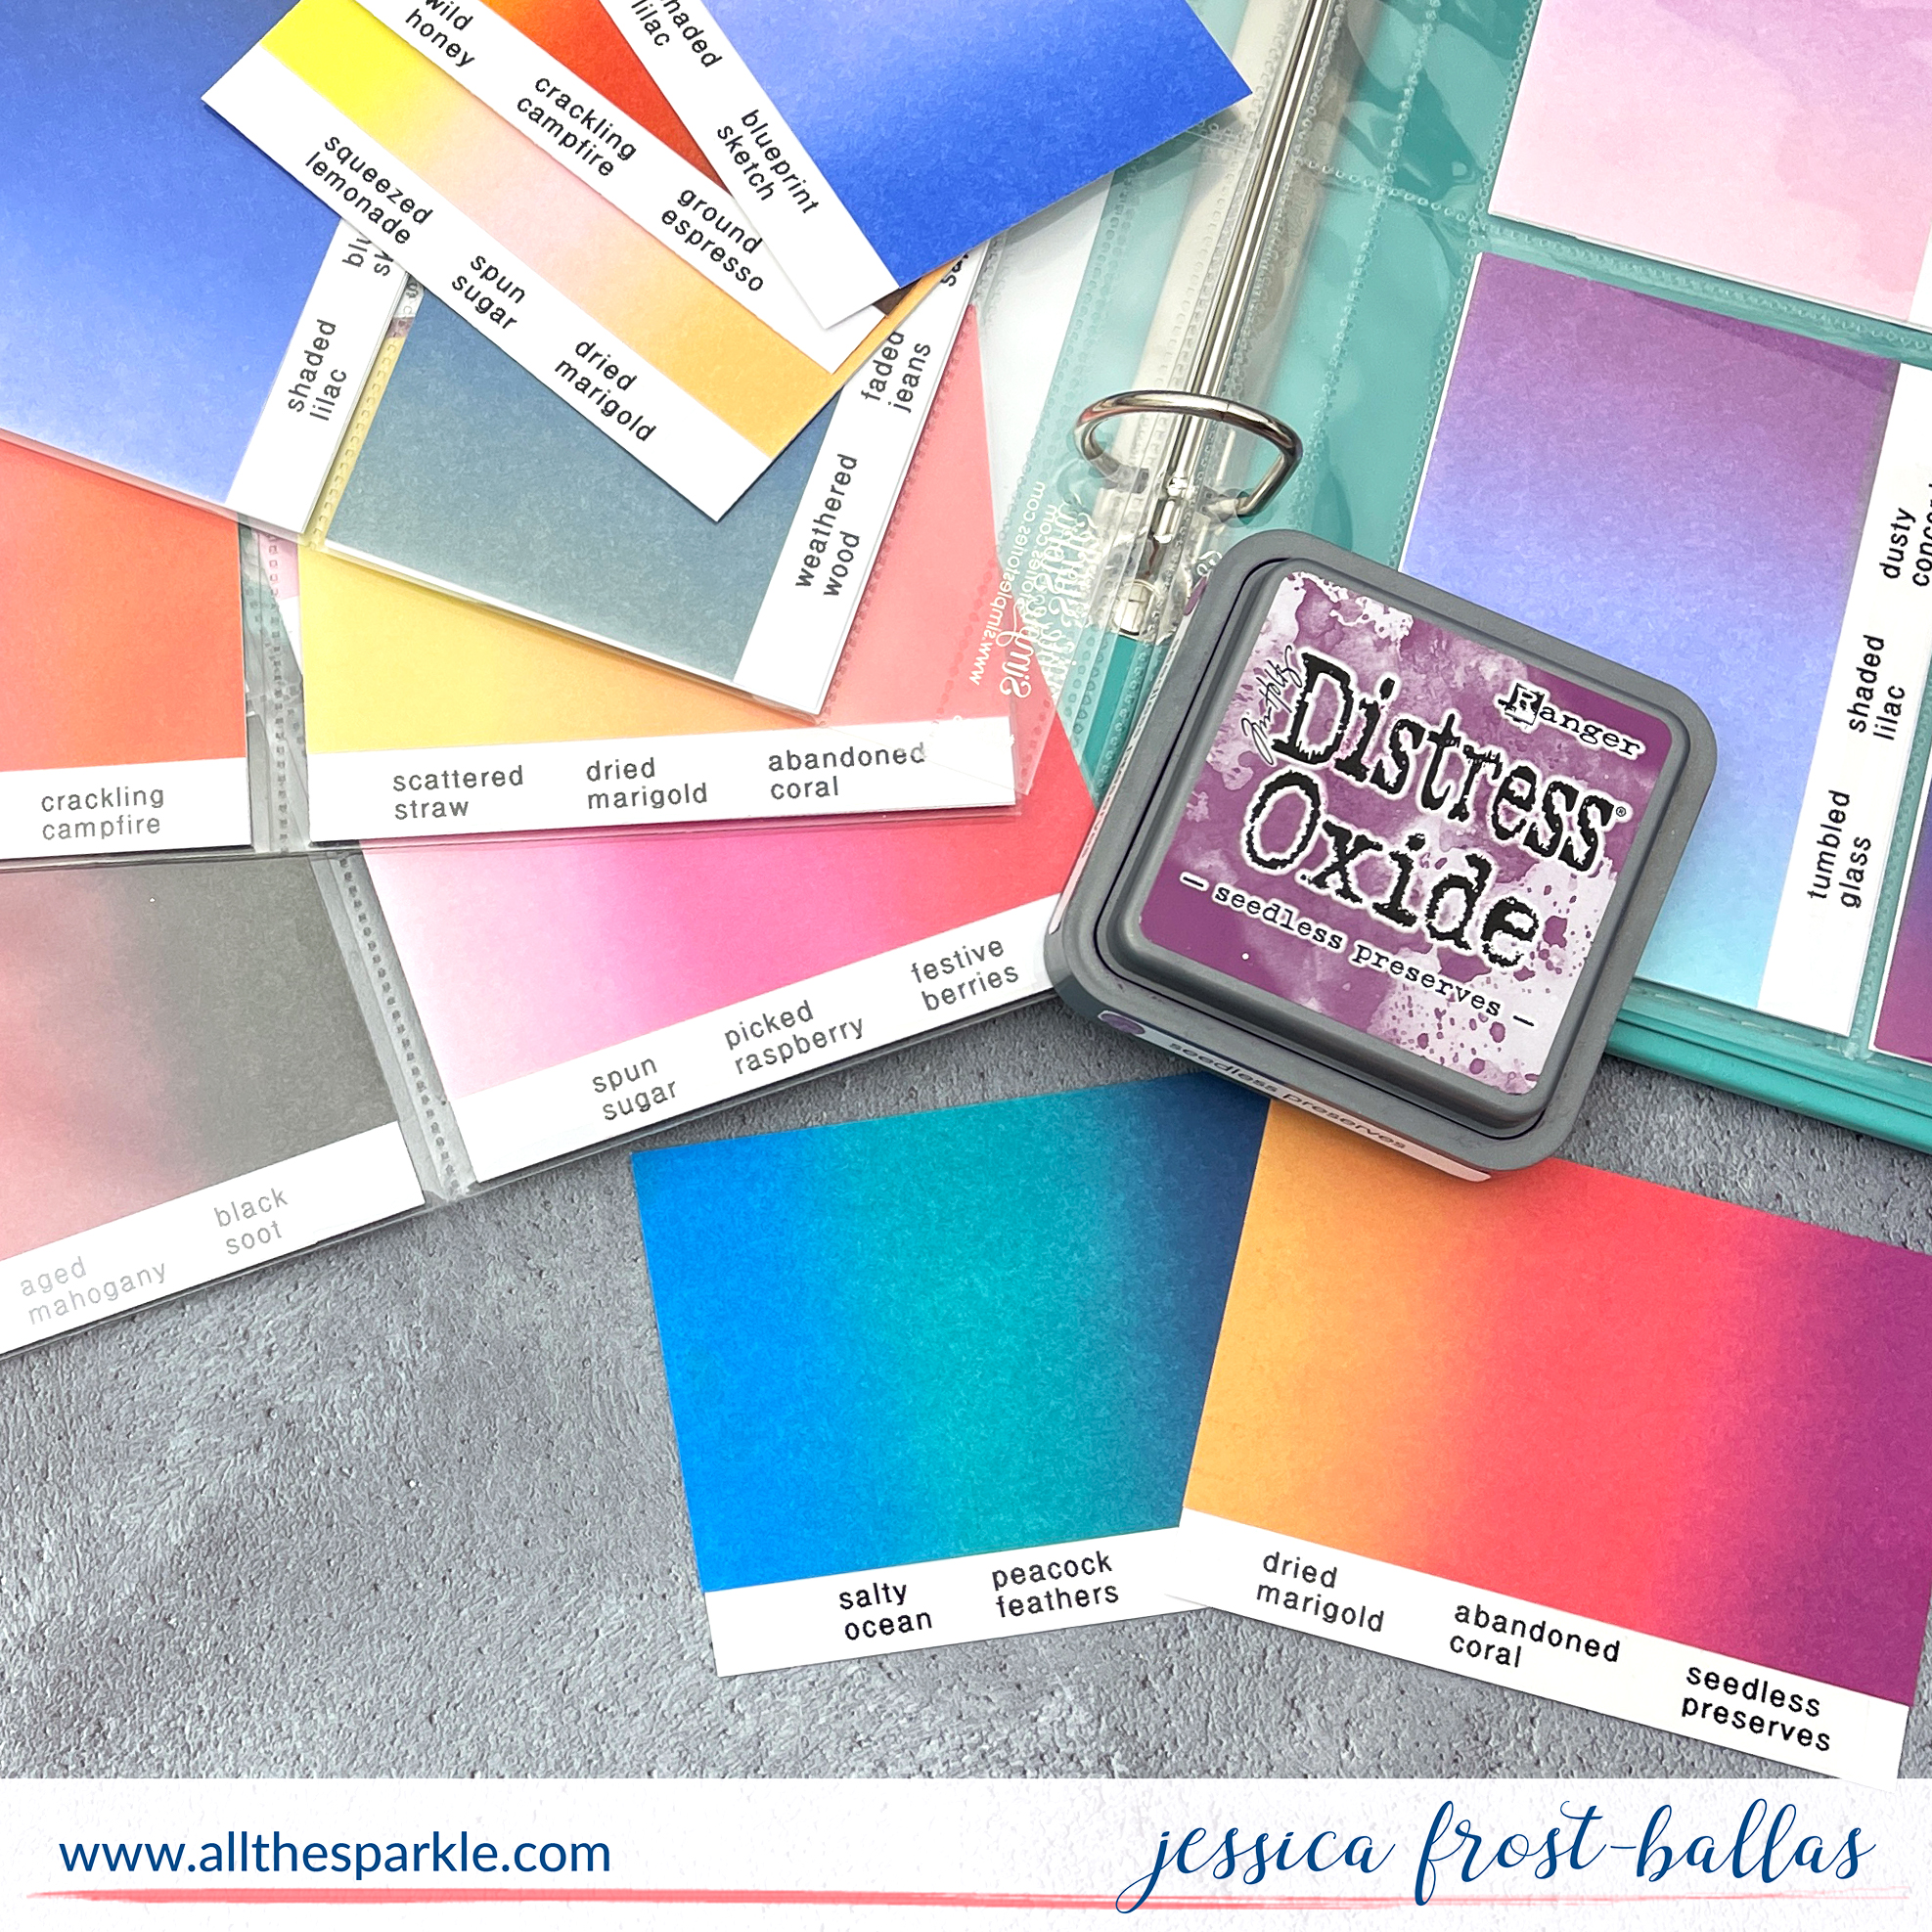 Distress Oxide Ink Blending Combinations and Swatch Book by Jessica Frost-Ballas https://youtu.be/4BdRiYhA8Eo